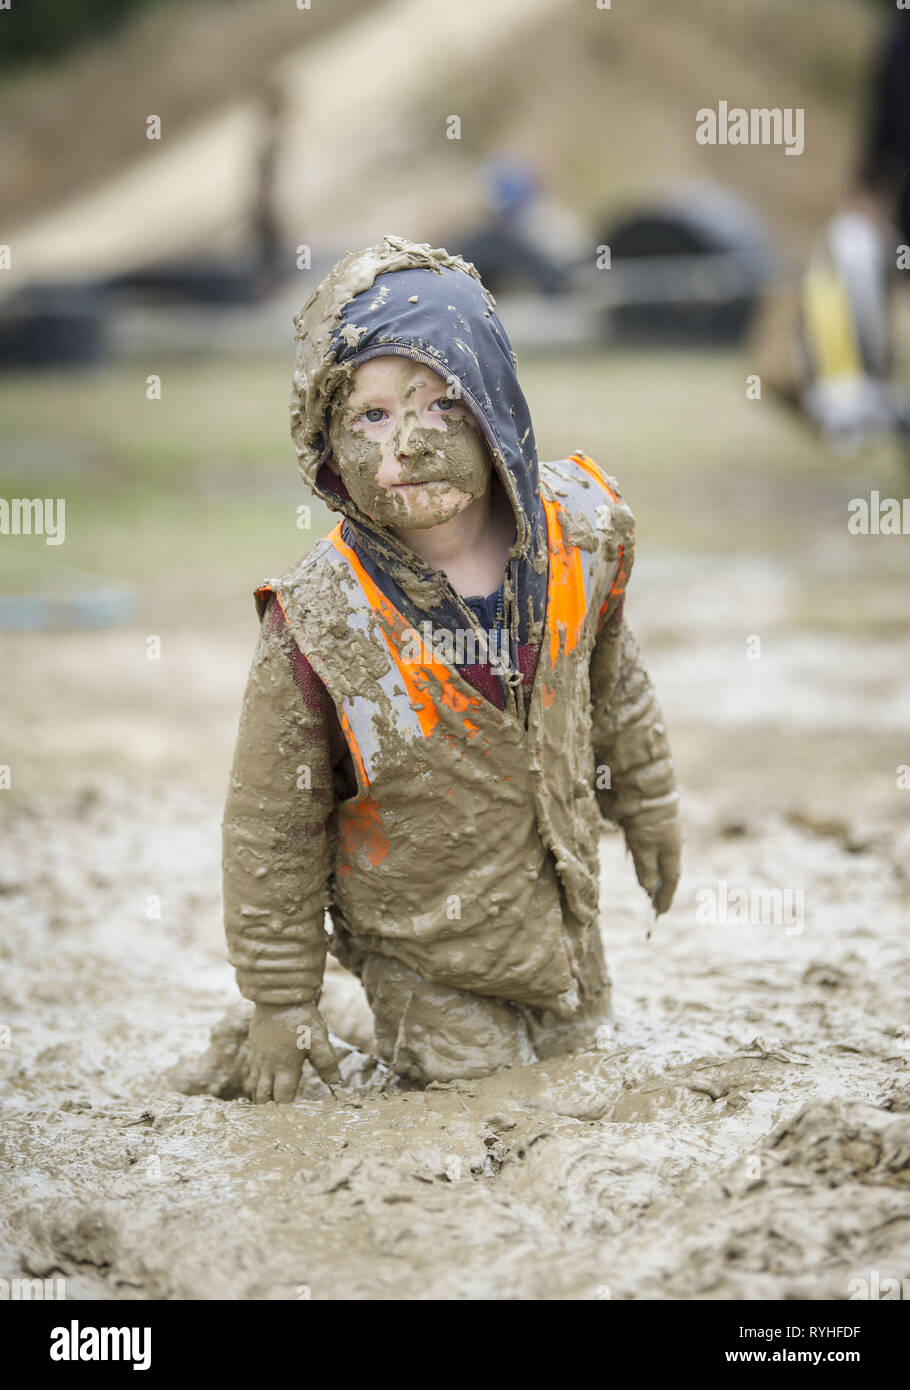 Christchurch, Canterbury, New Zealand. 14th Mar, 2019. Parents and children romp in ''messy mud nature play'' at Bottle Lake Forest Park, part of the city's Parks Week. Credit: PJ Heller/ZUMA Wire/Alamy Live News - Stock Image